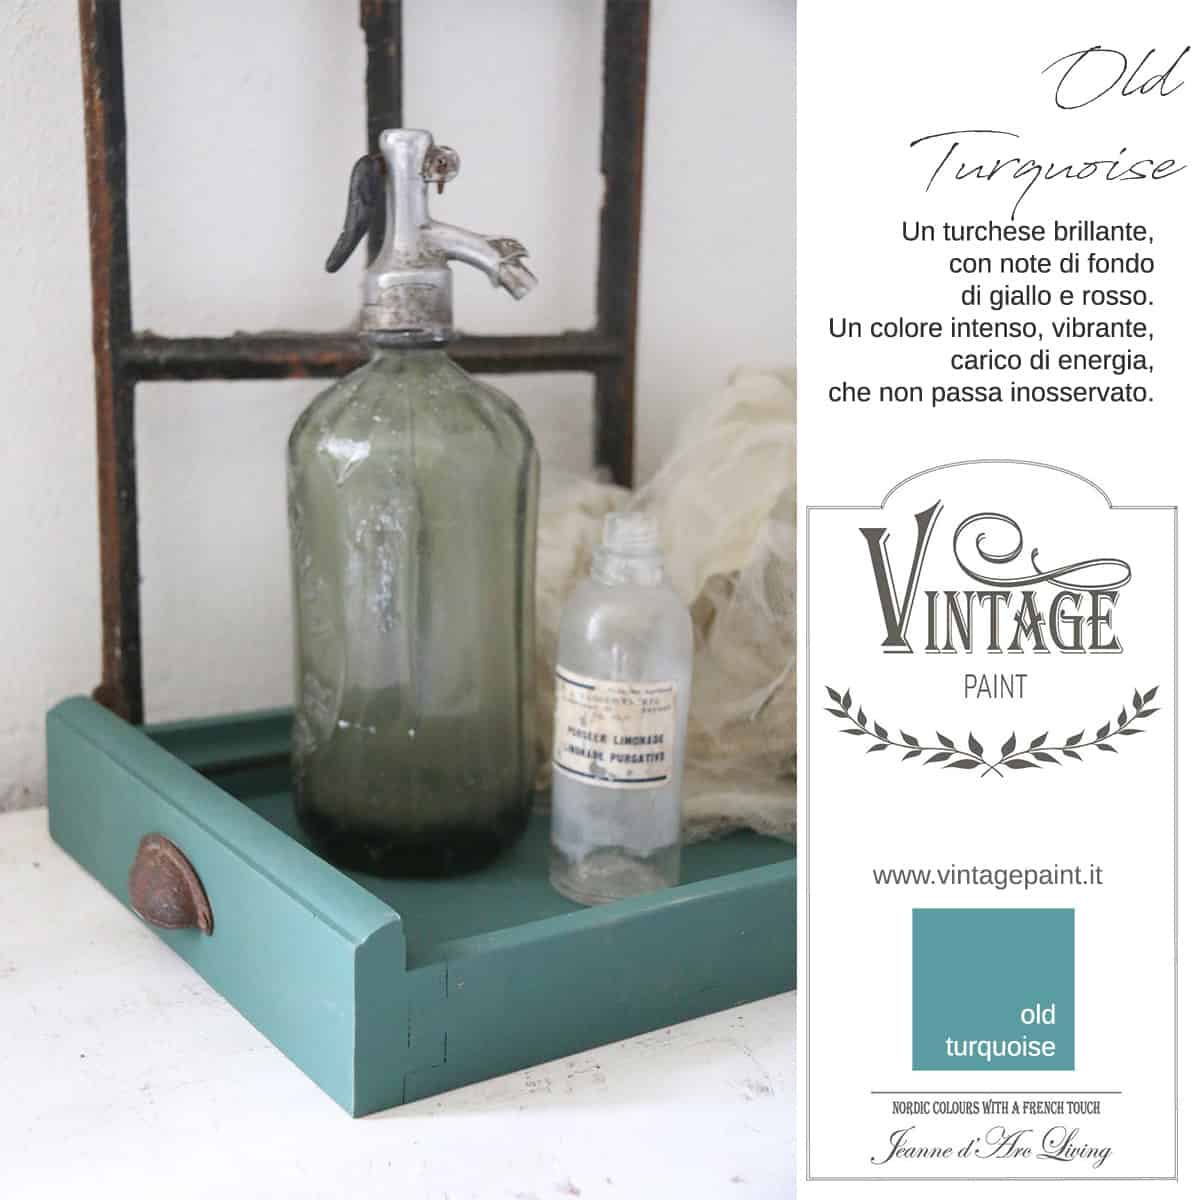 old turquoise turchese blu azzurro vintage chalk paint vernici shabby chic autentico look gesso